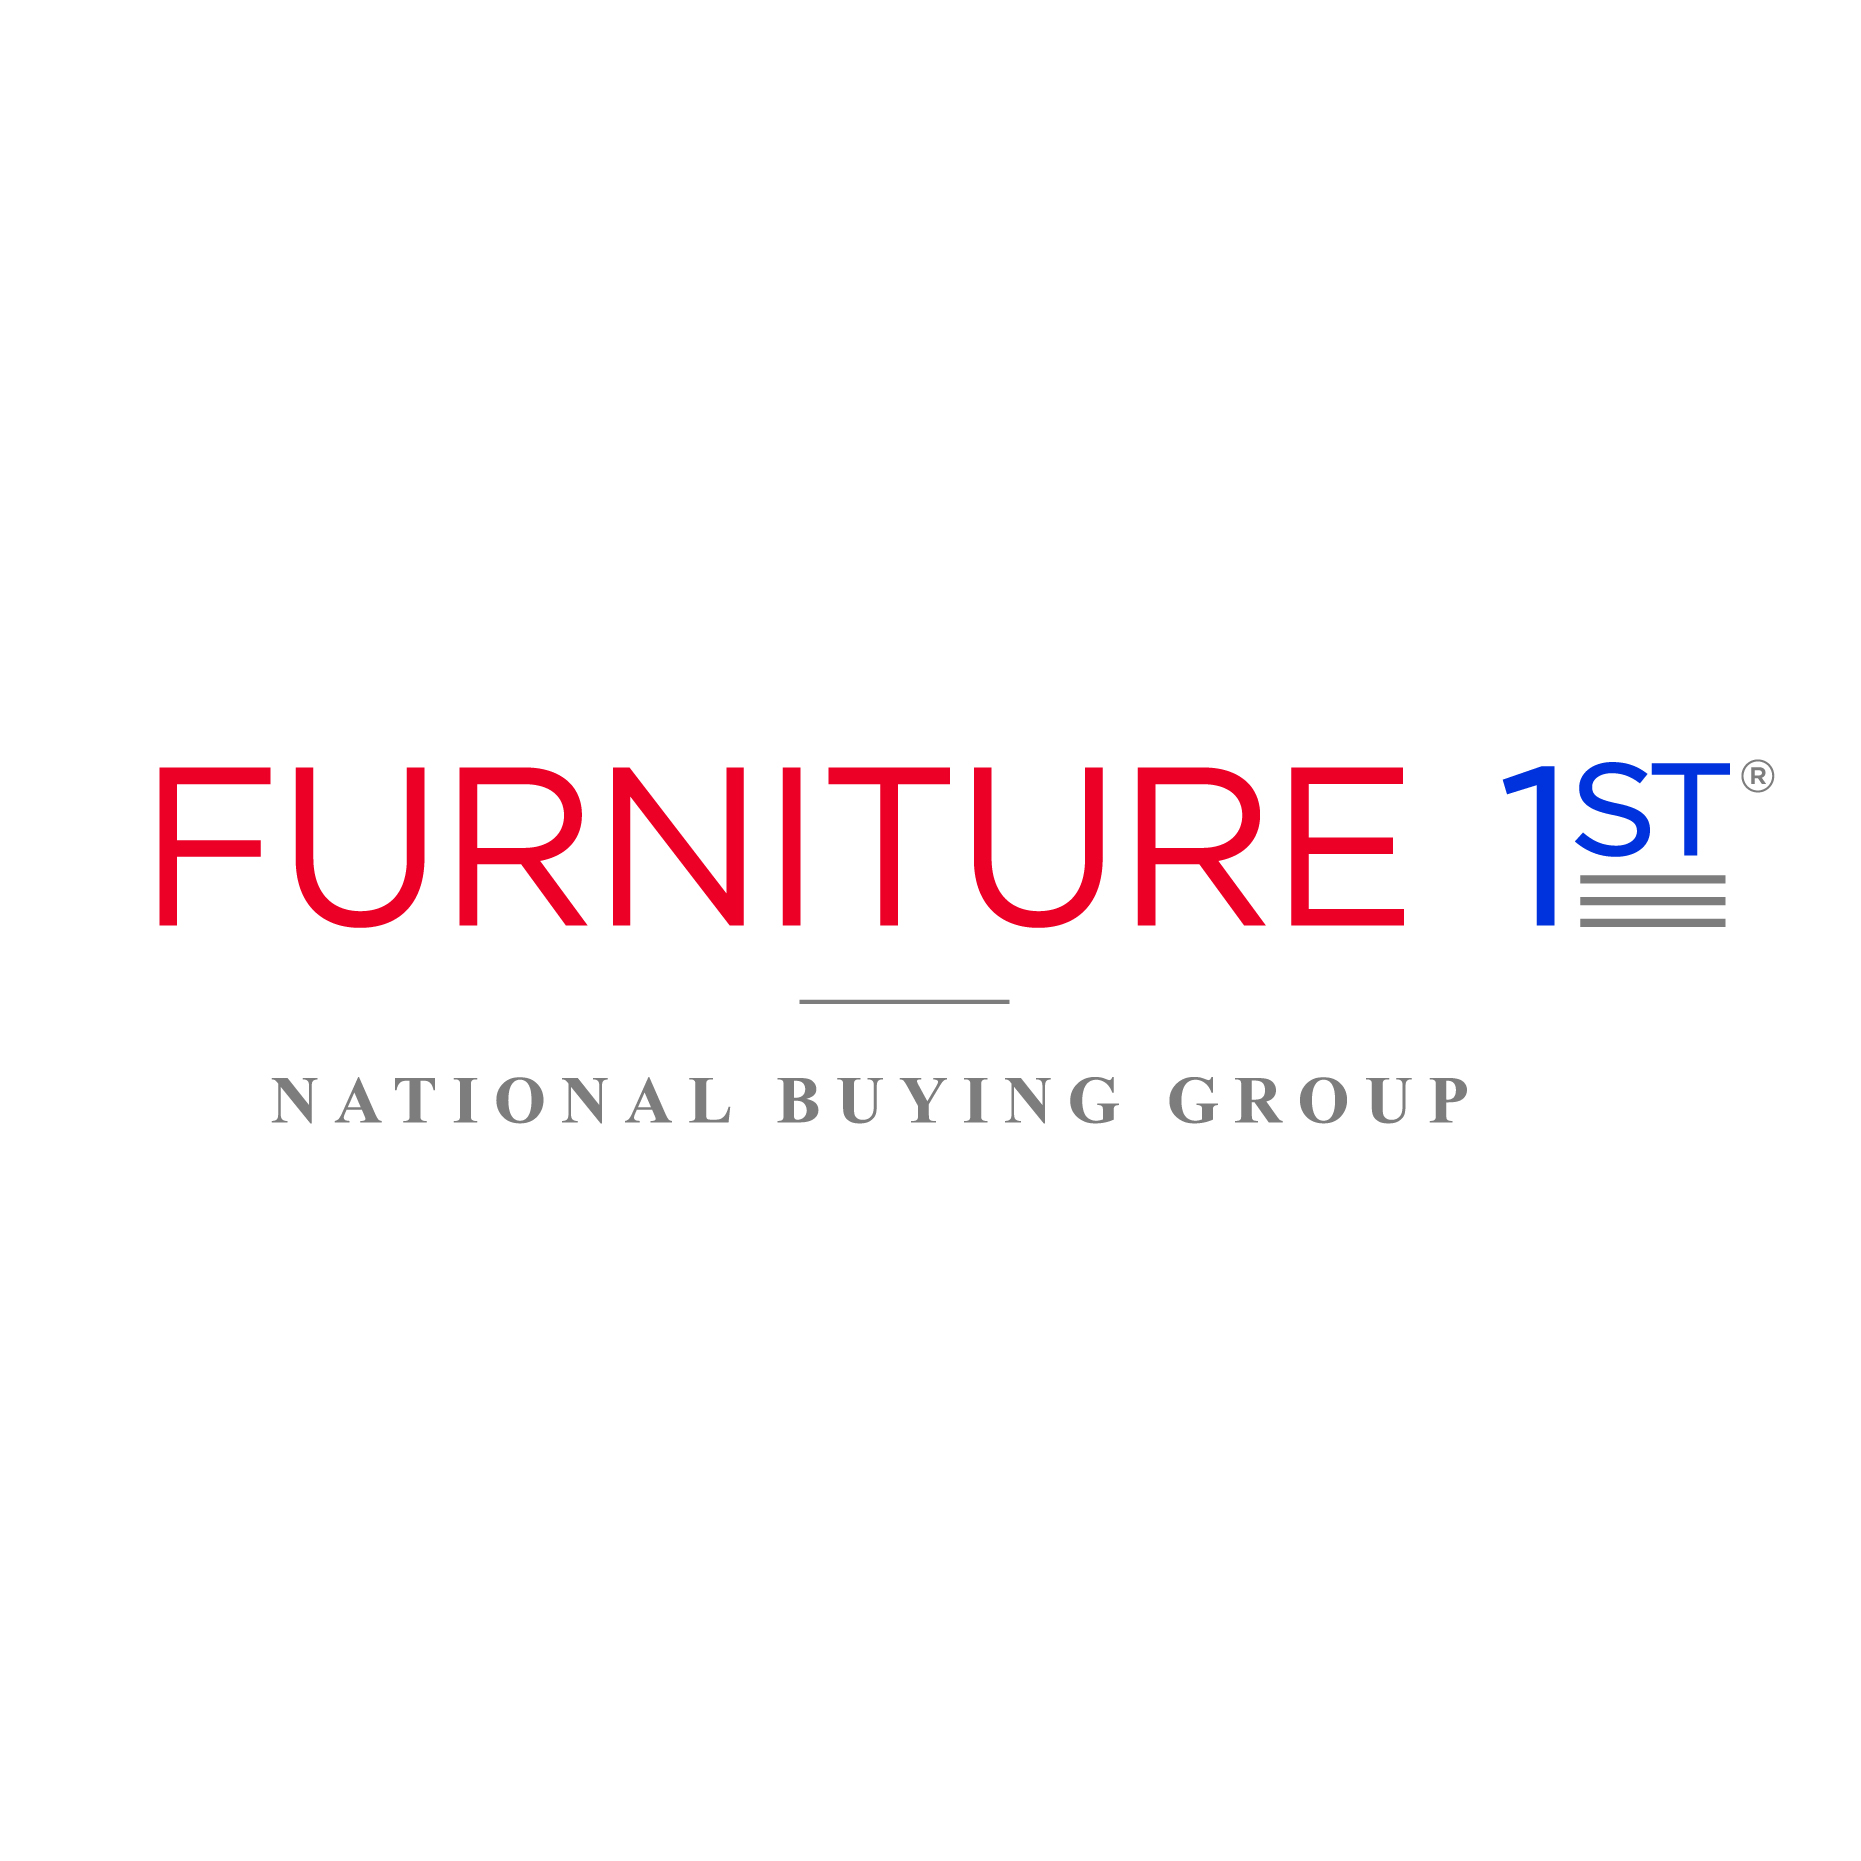 Furniture 1st